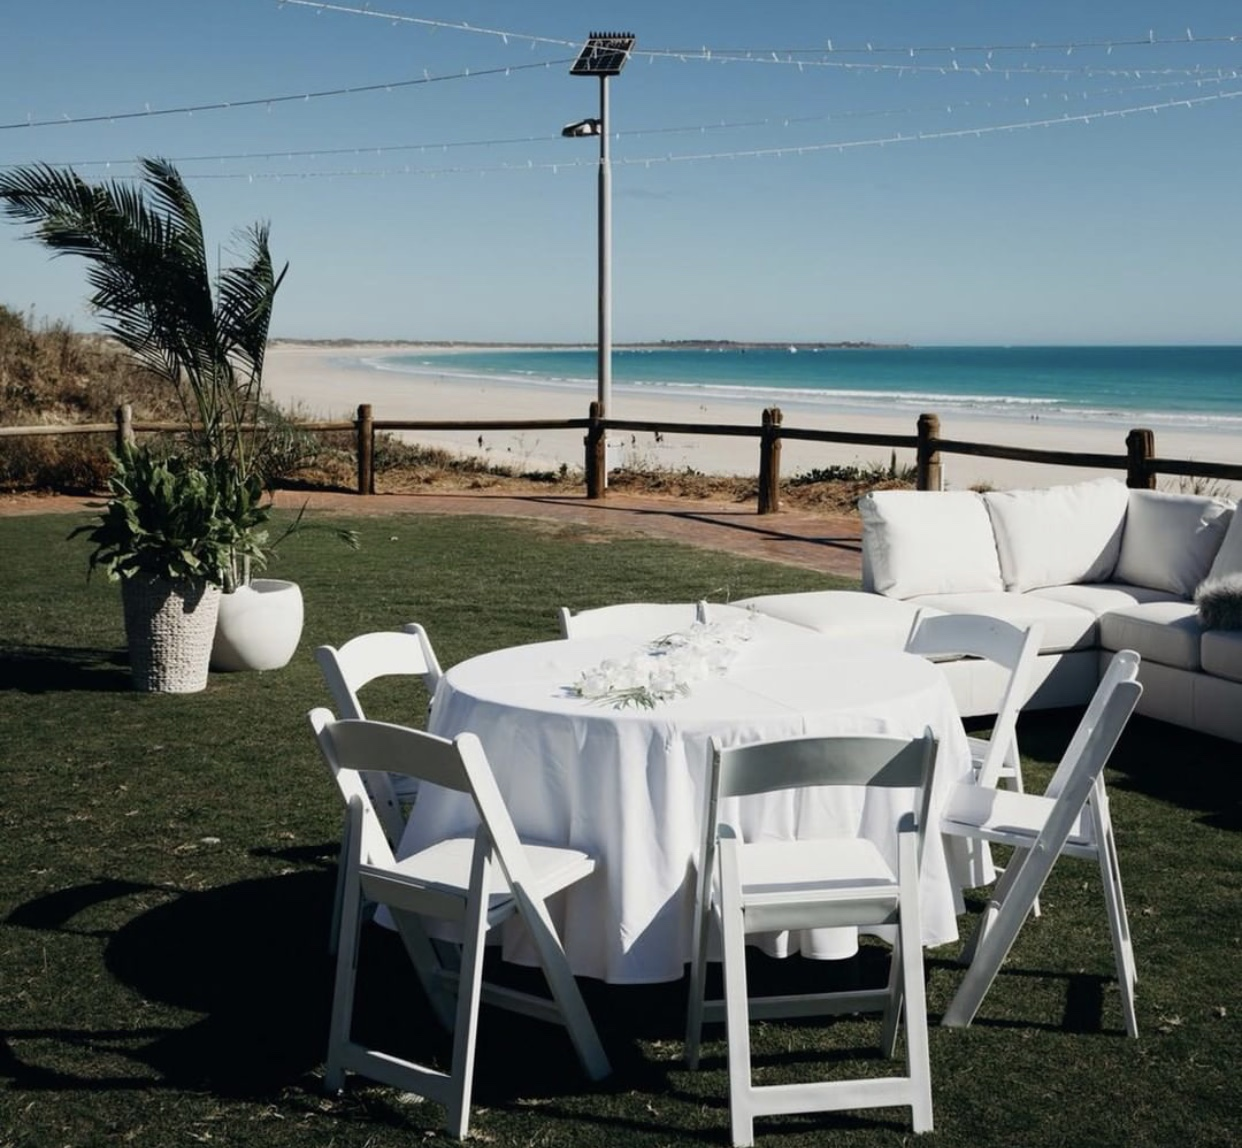 White Chairs: $10 each - Perfect for your beach or garden ceremony or a sit down receptionPhoto by Julia Rau